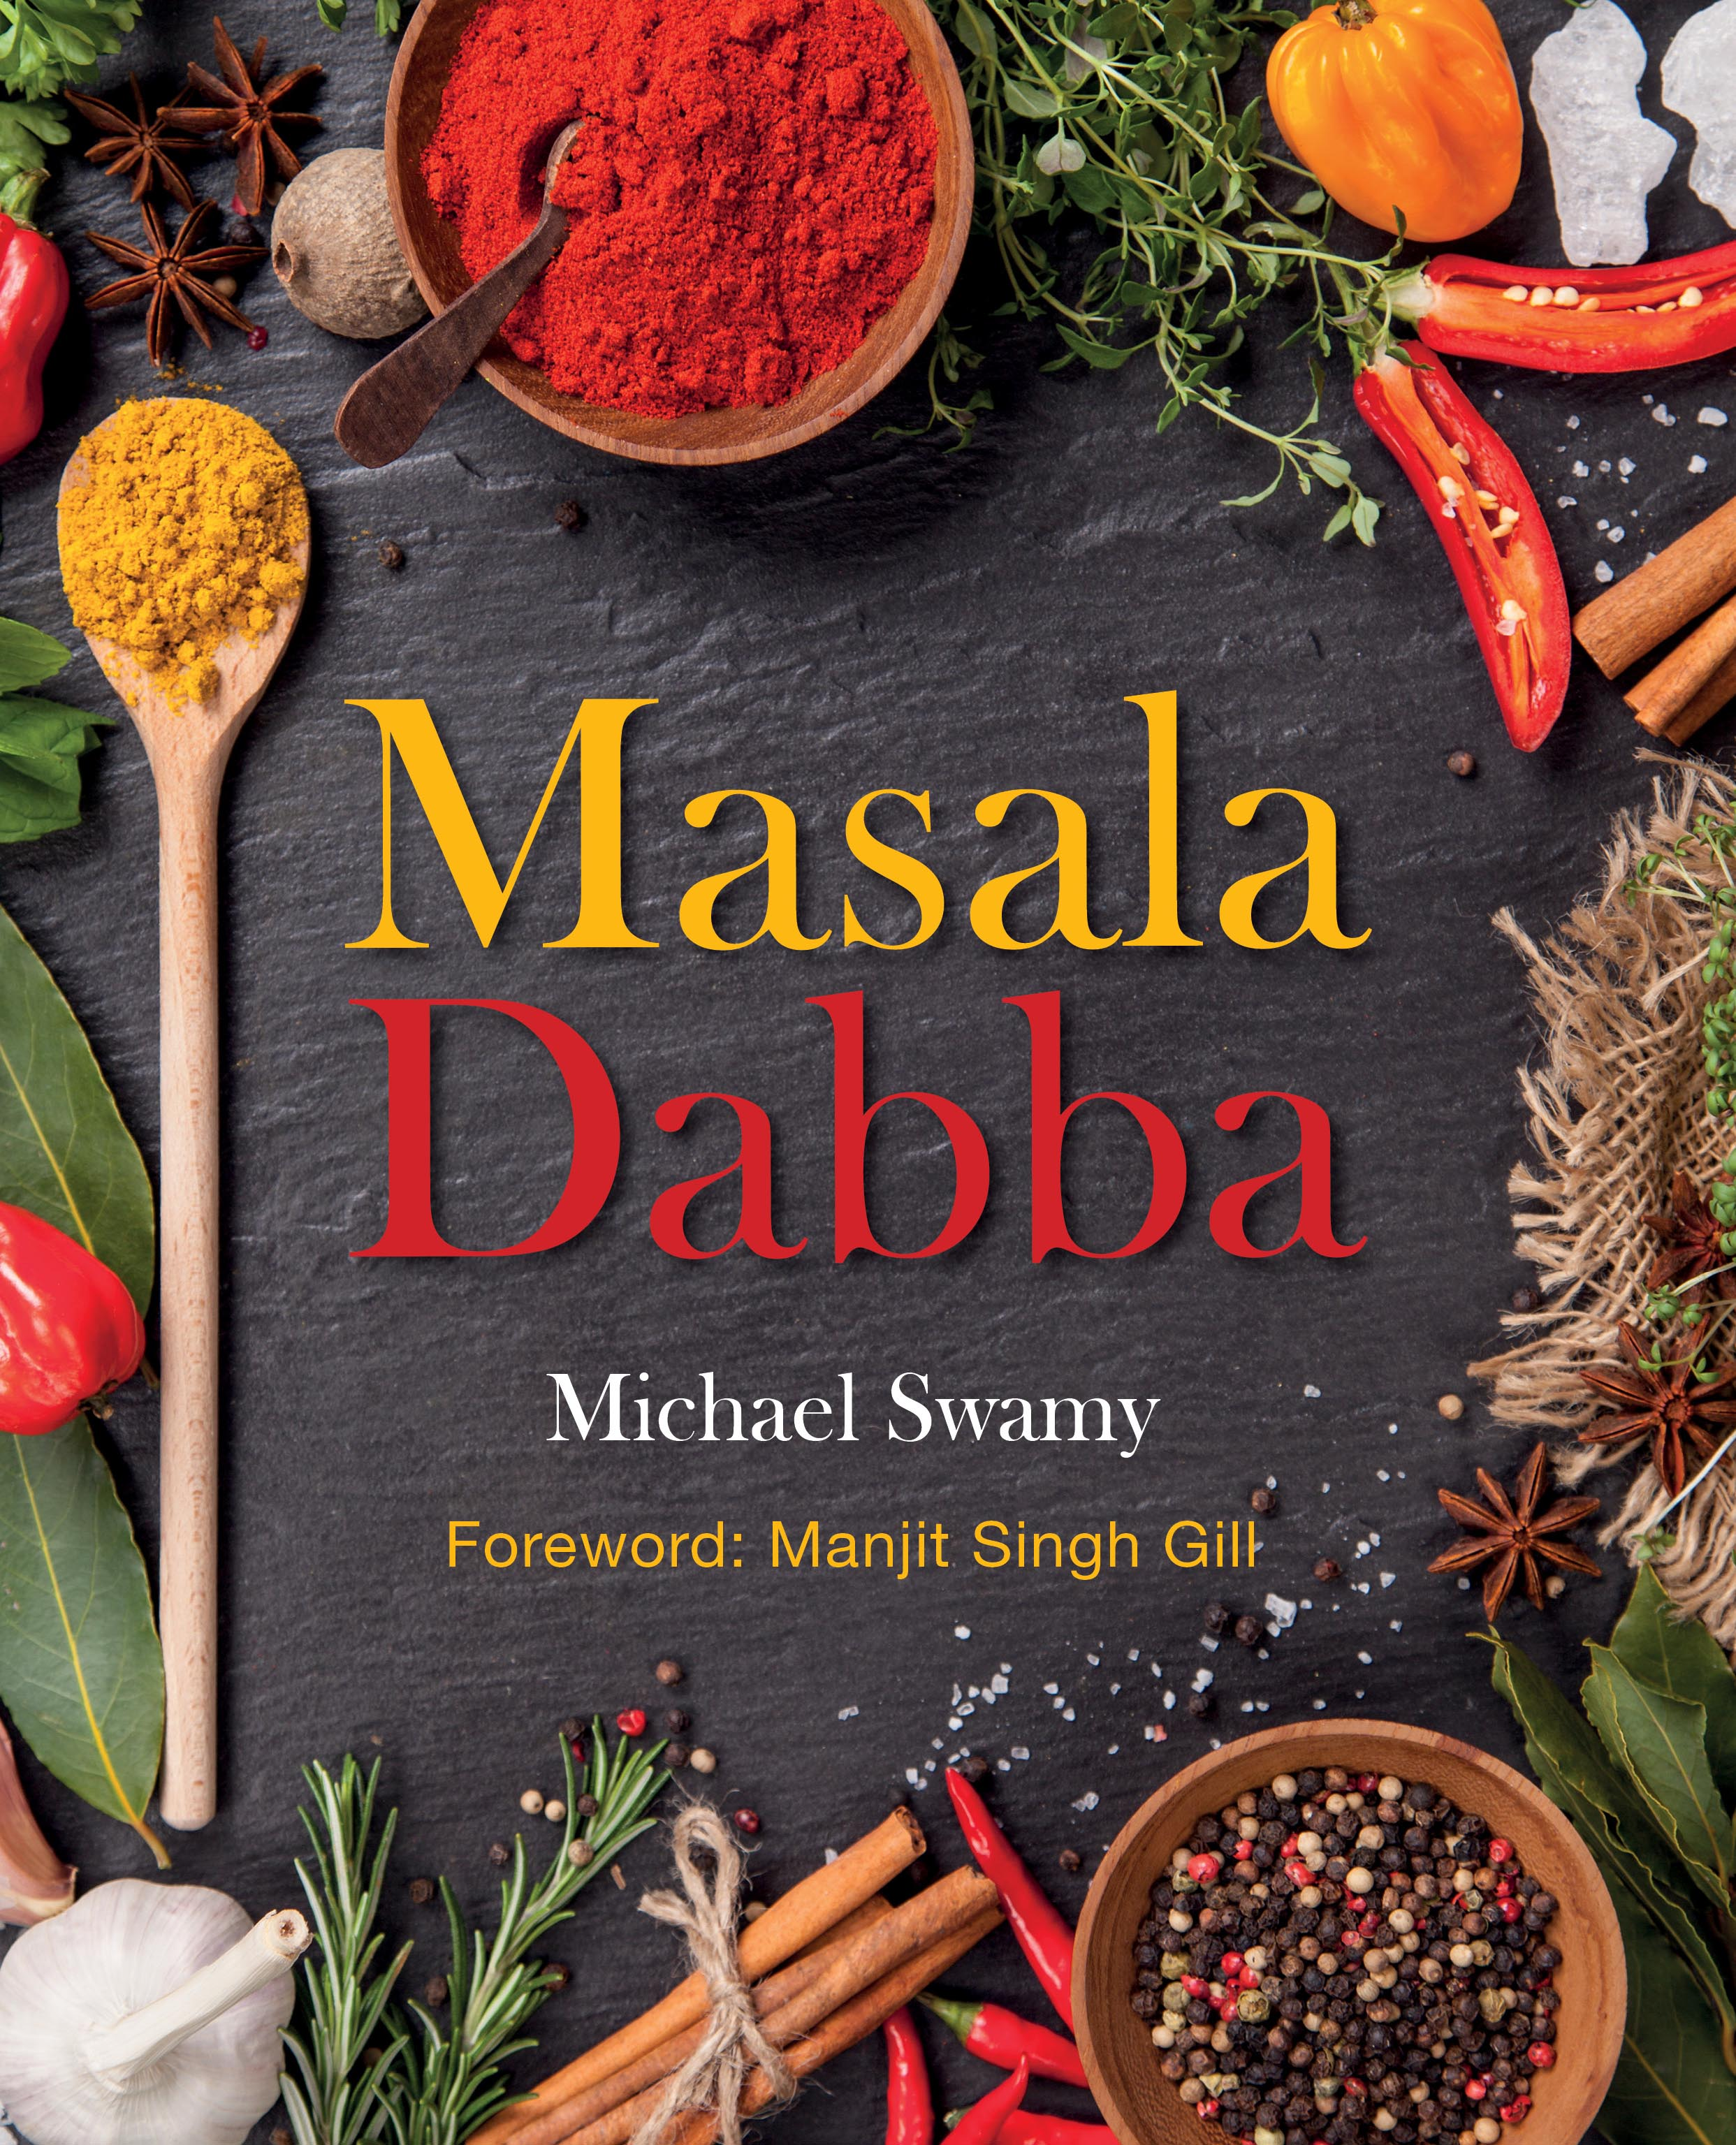 MASALA DABBA by Michael Swamy